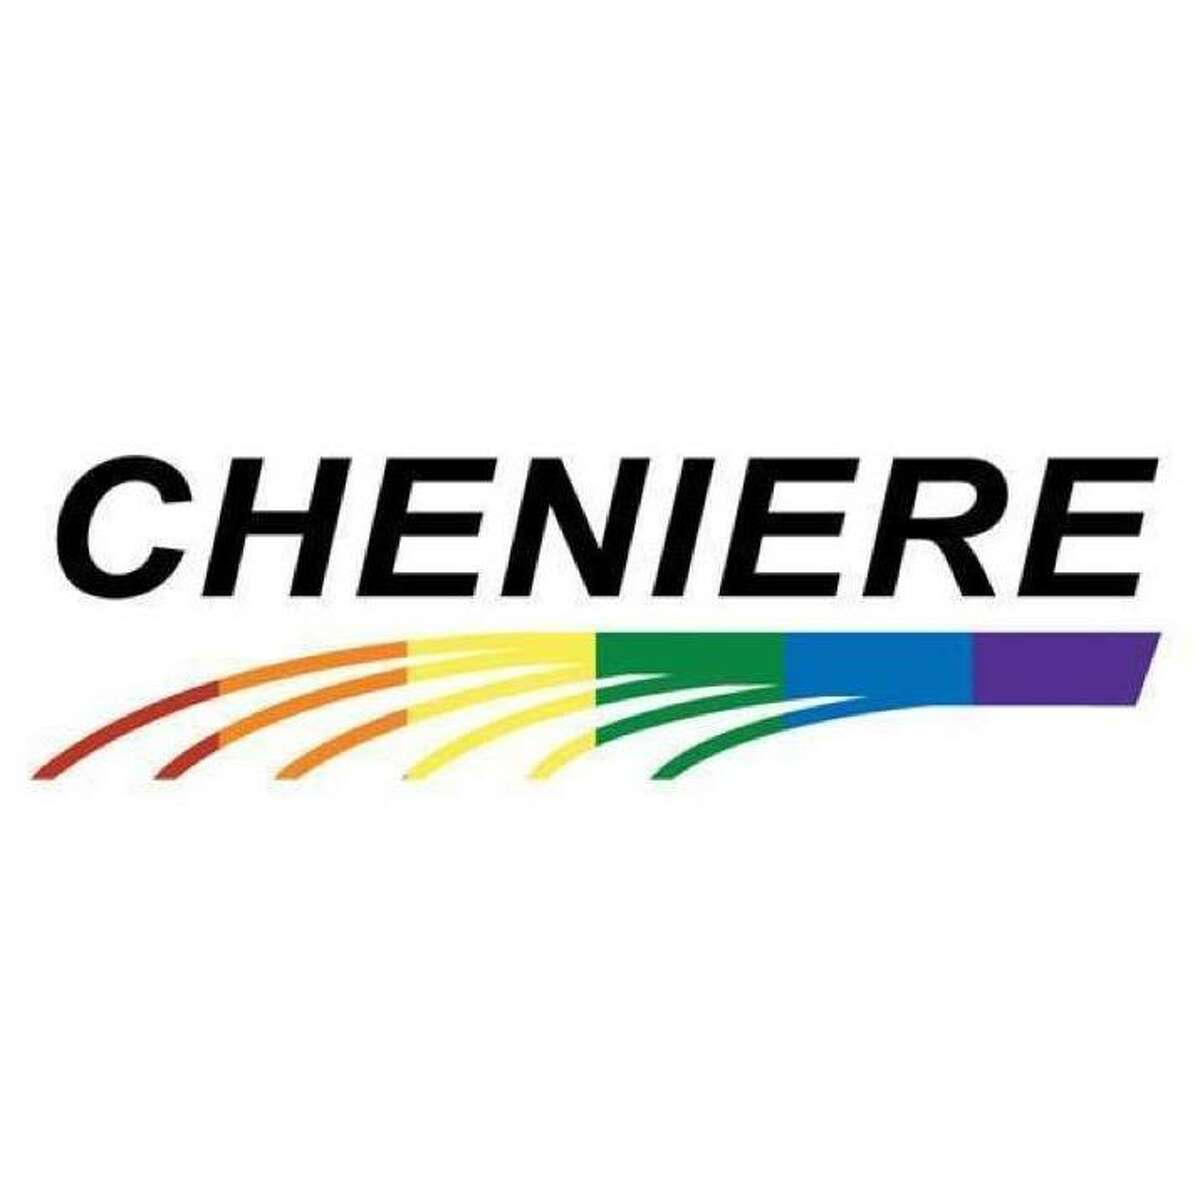 Houston liquefied natural gas company Cheniere Energy broke an industry barrier after rolling out a modified logo that celebrates gay pride month.